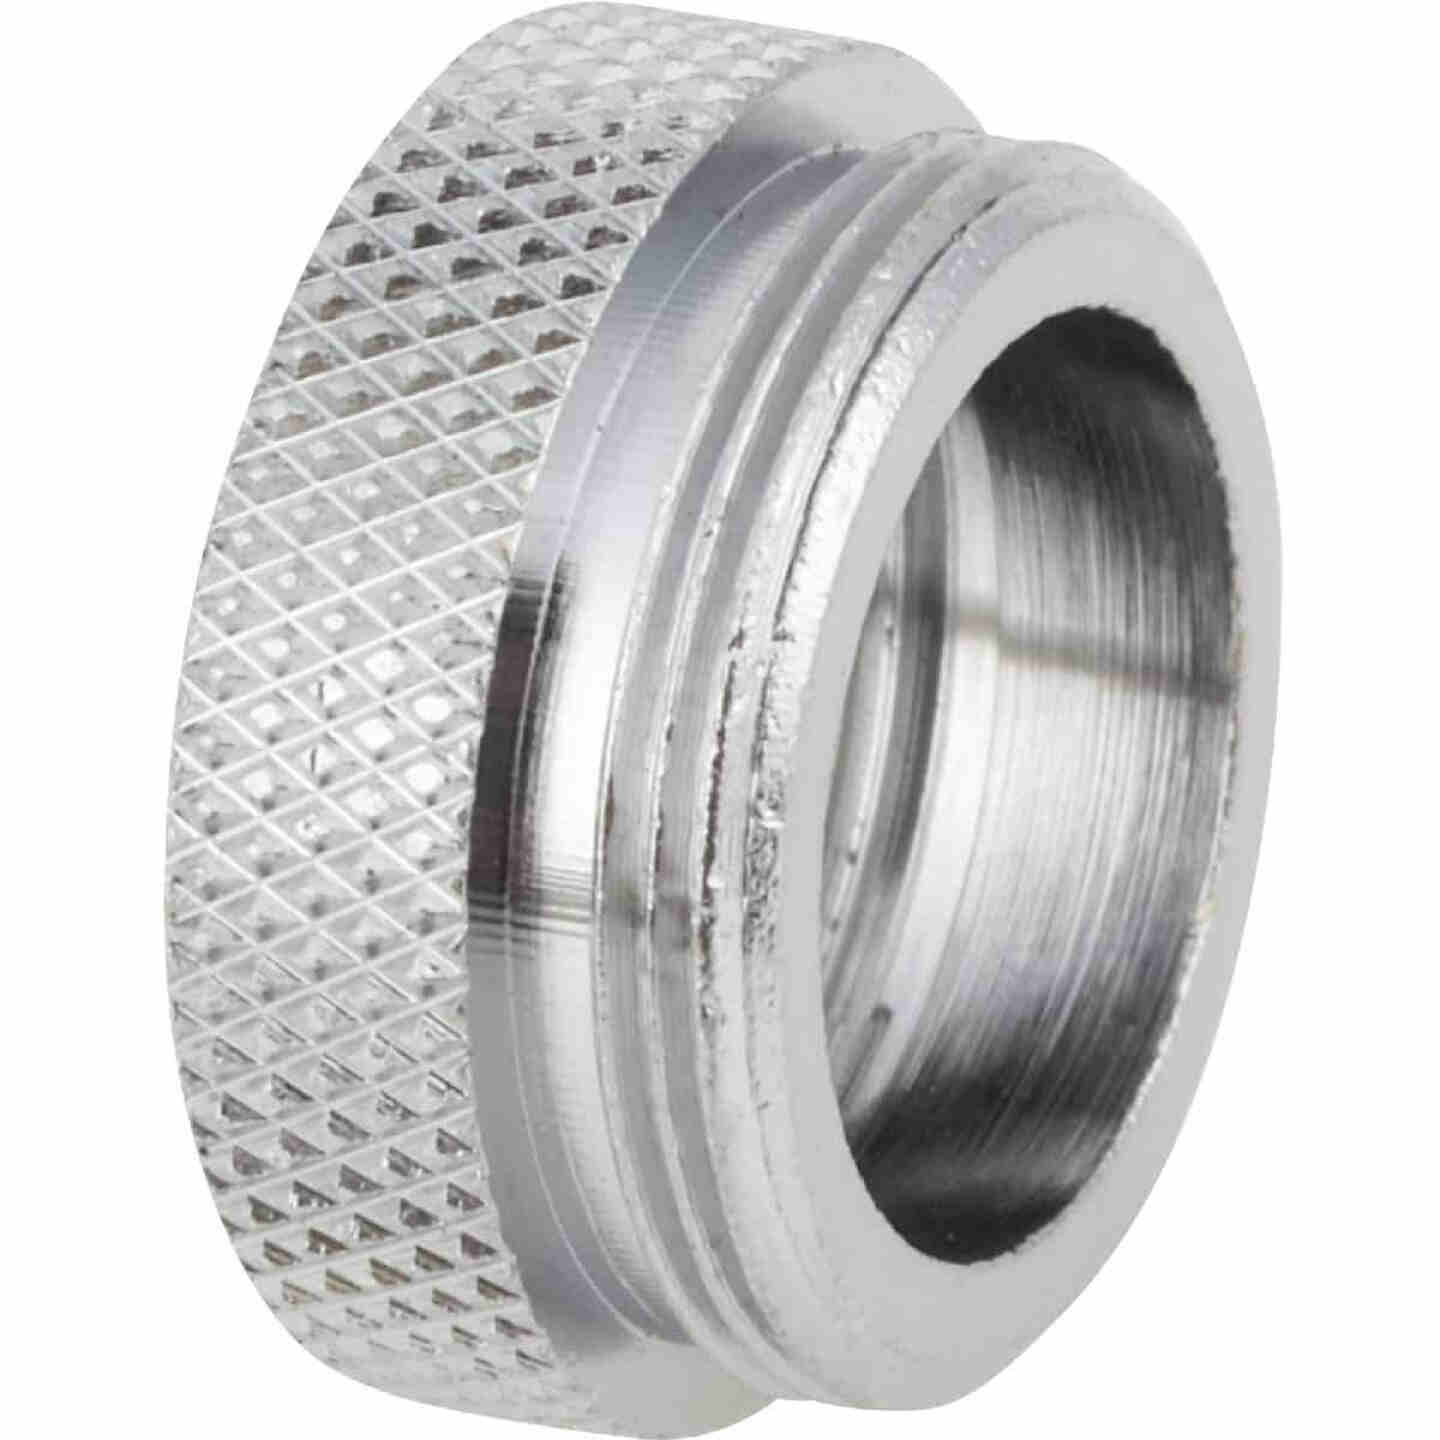 """Do it 3/4"""" x 27-Male to 55/64"""" x 27 Small Aerator Faucet Adapter Image 1"""